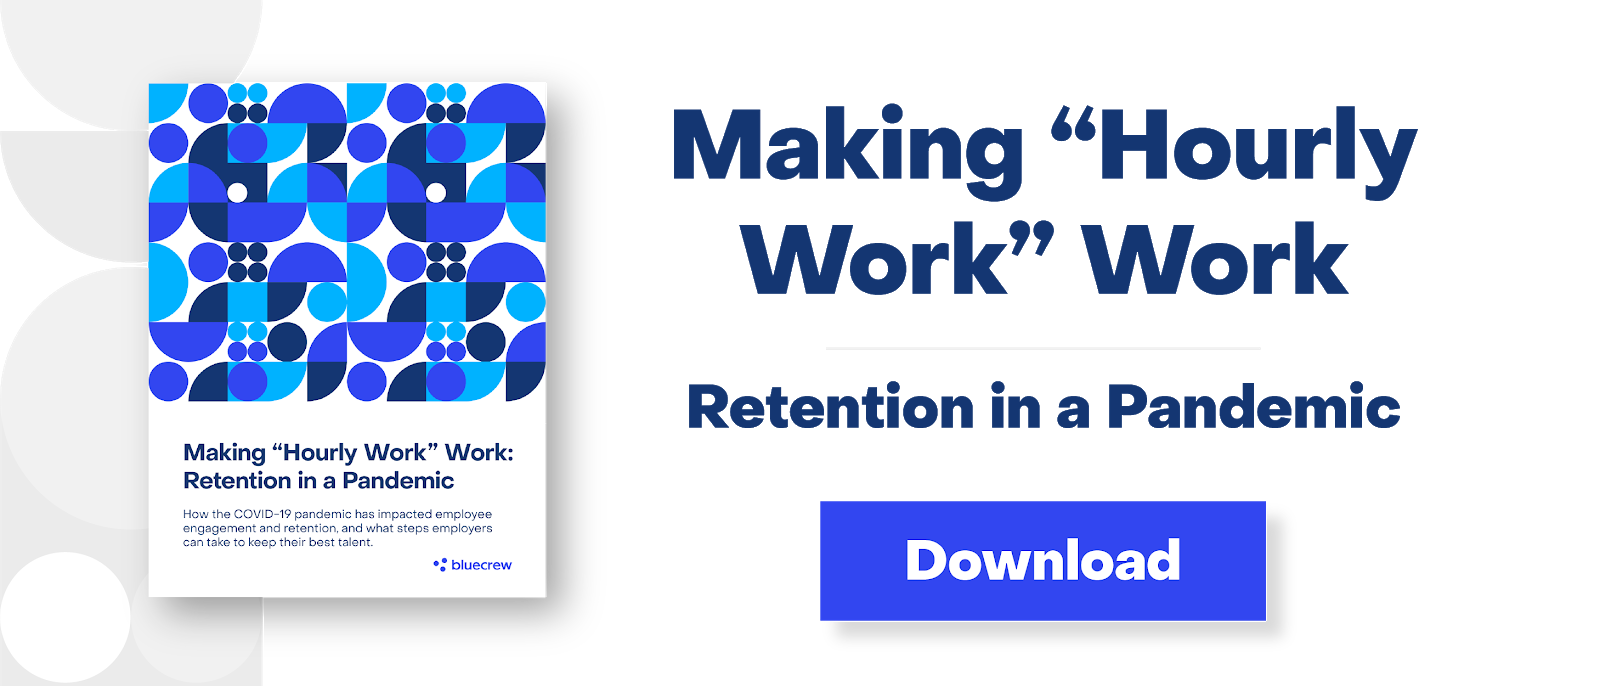 your guide to worker retention during the COVID-19 pandemic